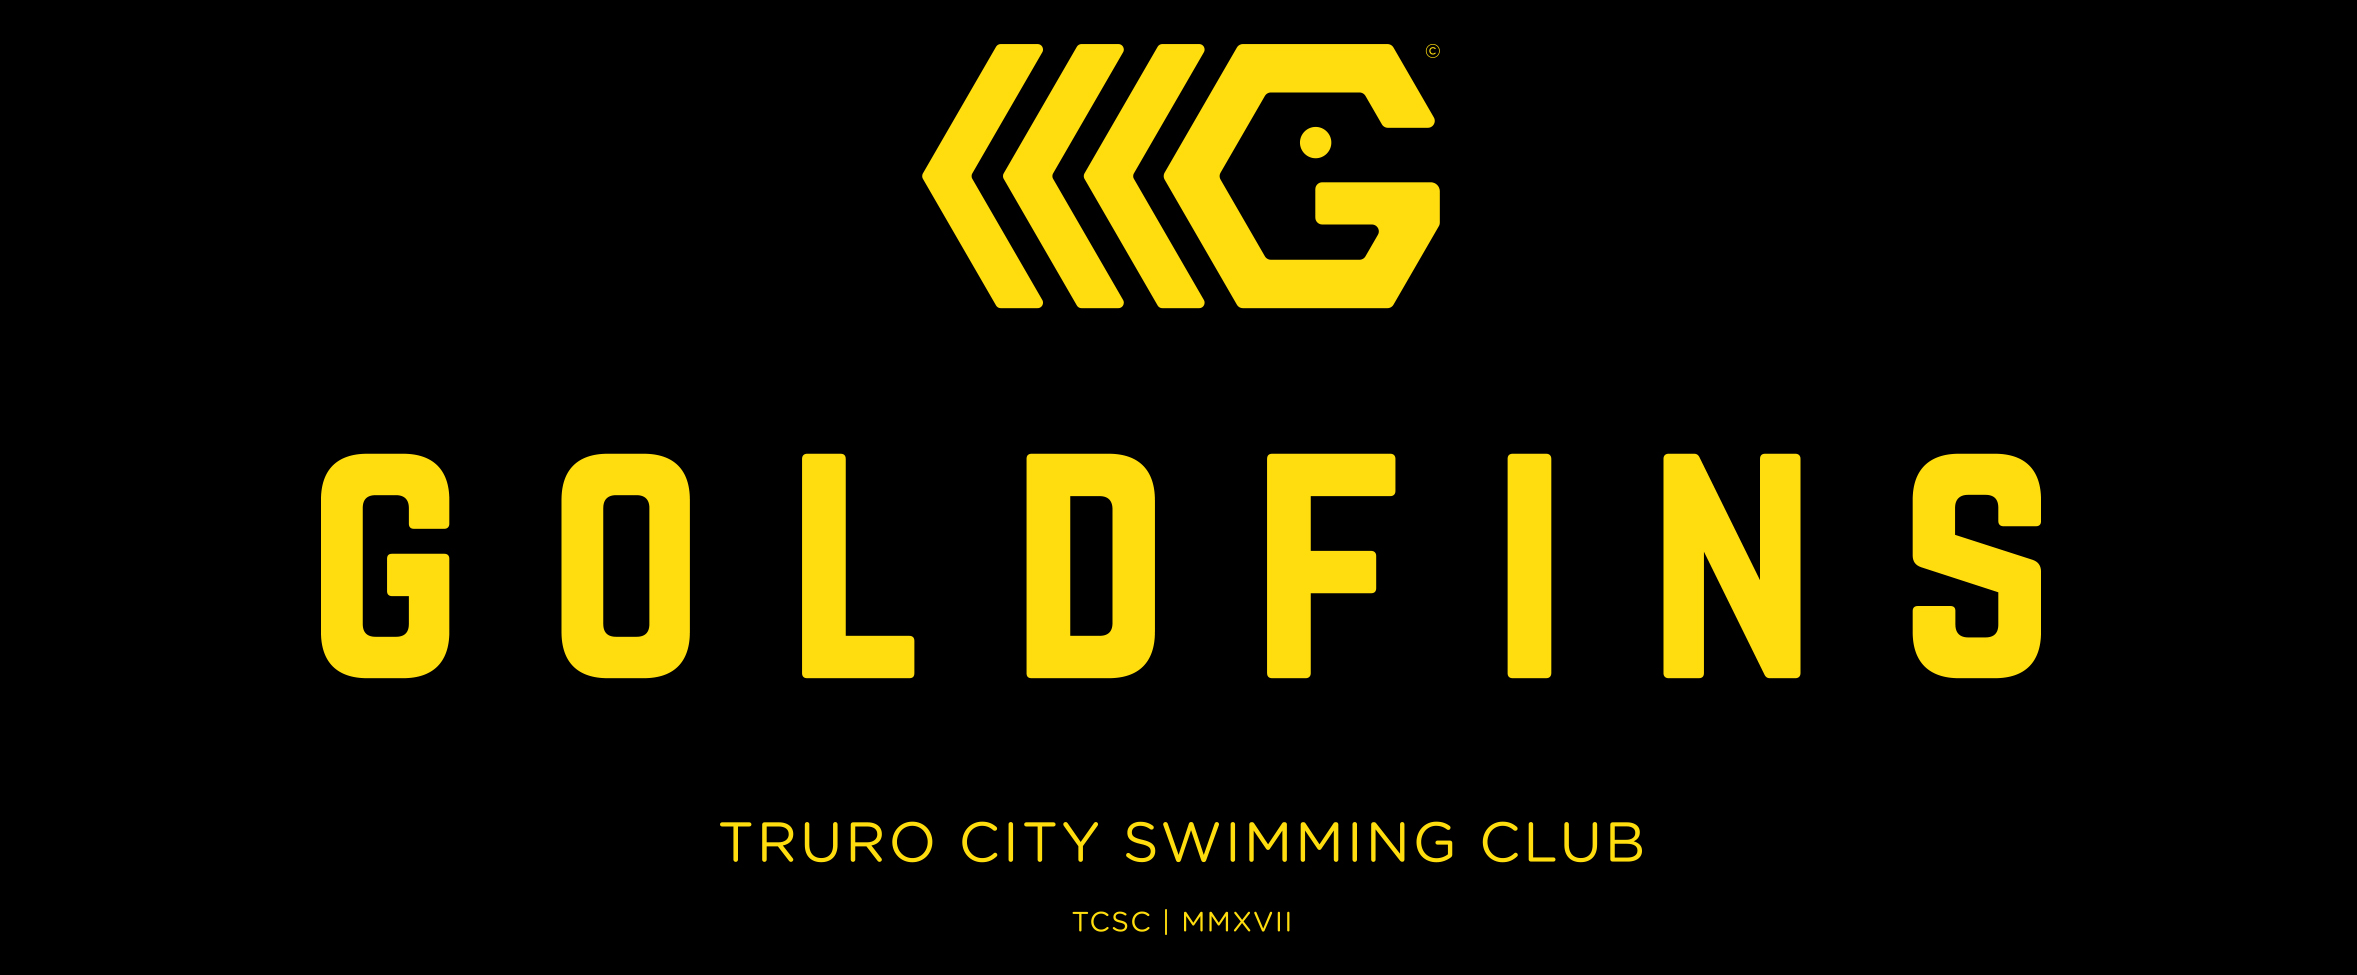 Truro City Swim Club